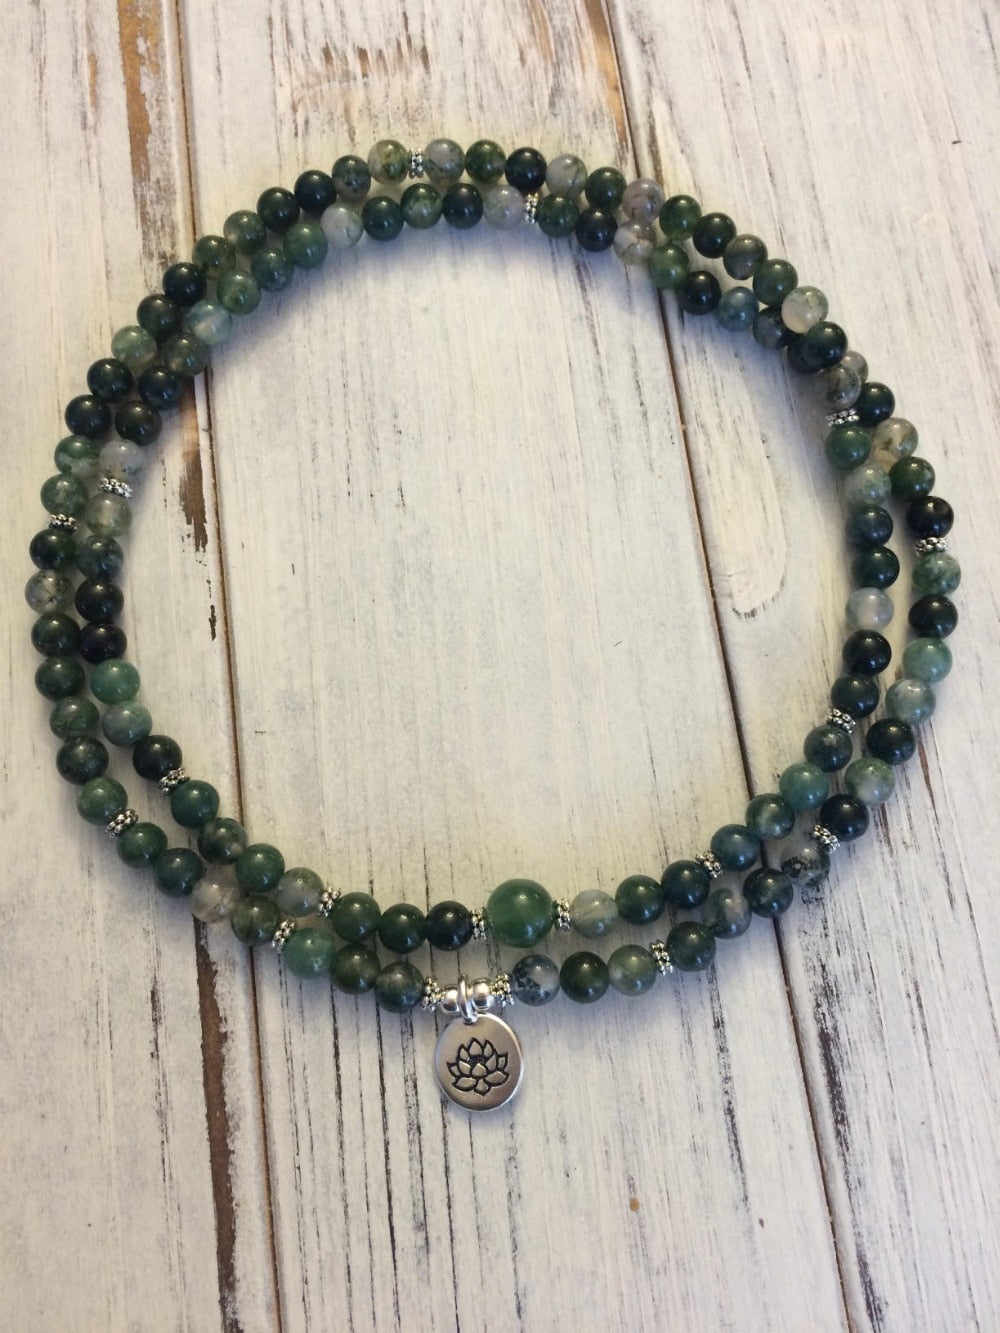 Green Moss Agate Mala Meditation Bracelet/Necklace